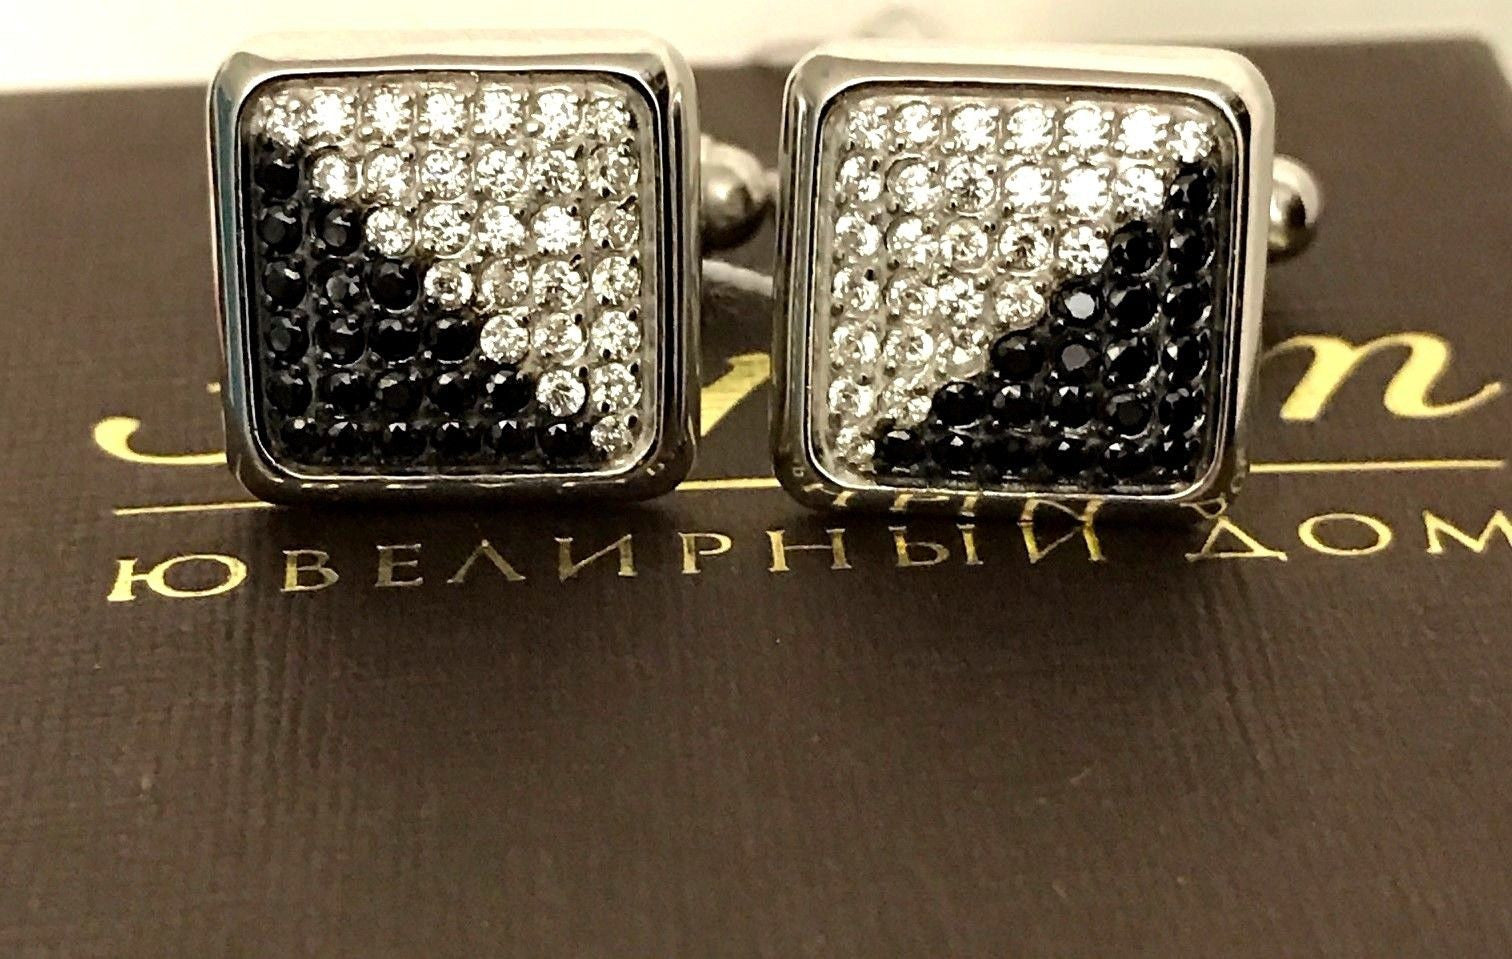 NWT Elegant Black & White Fianit with 585 White Gold Cufflinks by Estet Jewelry - BAYSUPERSTORE